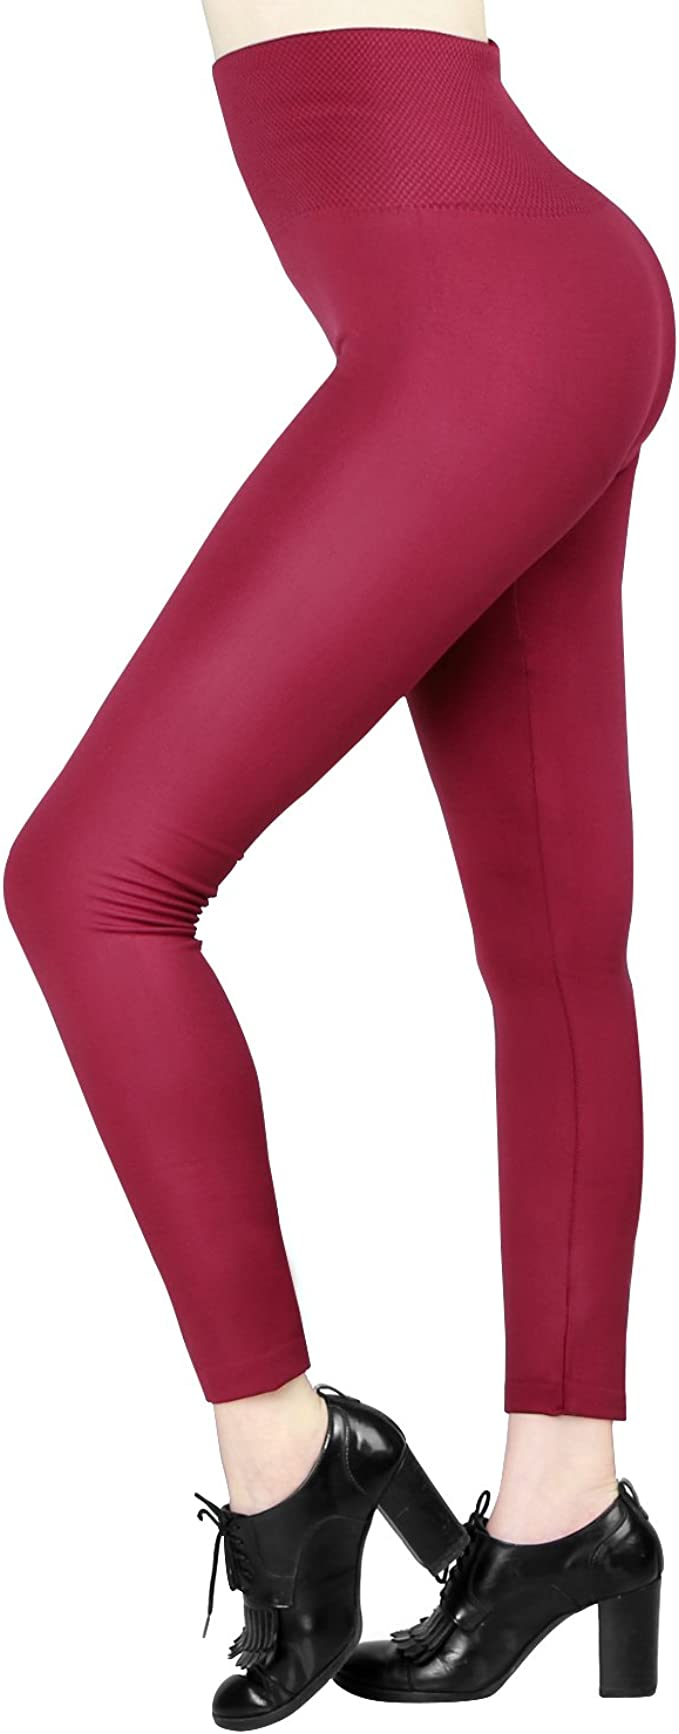 Thicken Skinny Fleece Lined High Waist Large Size Women Leggings Thick Tights Winter Warm Women Velvet Elastic Leggings Pants HPZHANG High Waist Winter Warm Leggings